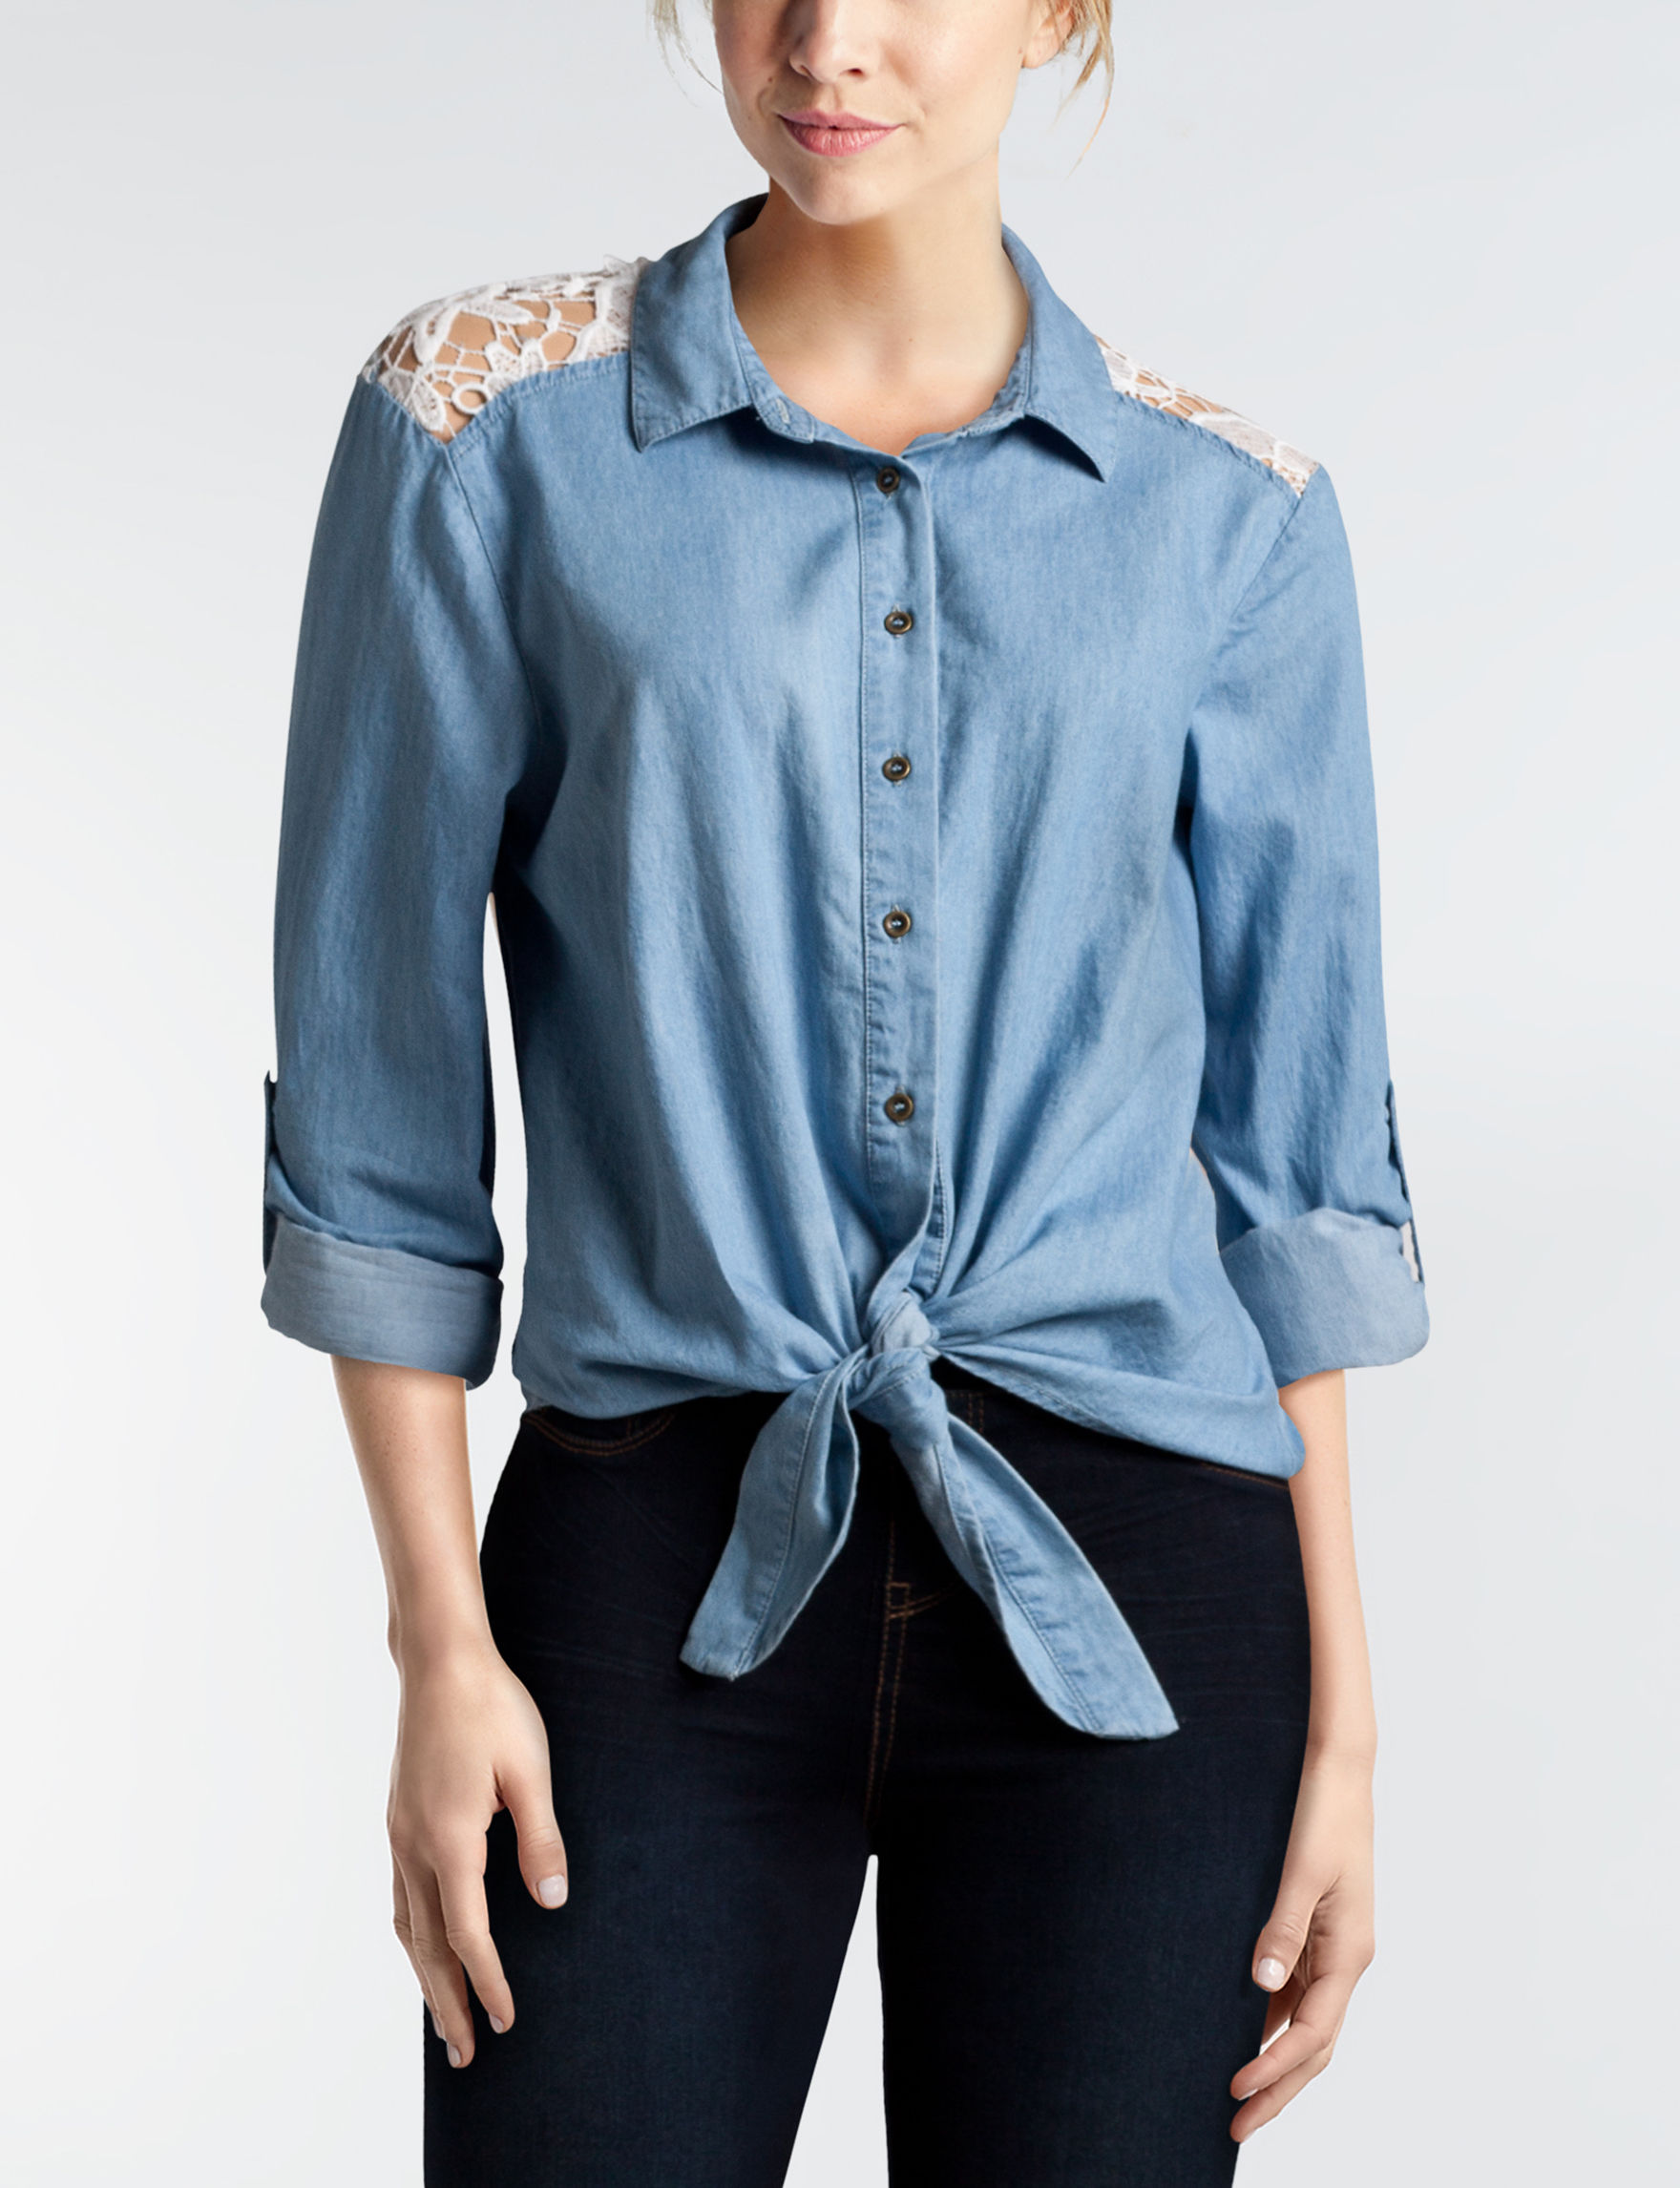 Justify Chambray Shirts & Blouses